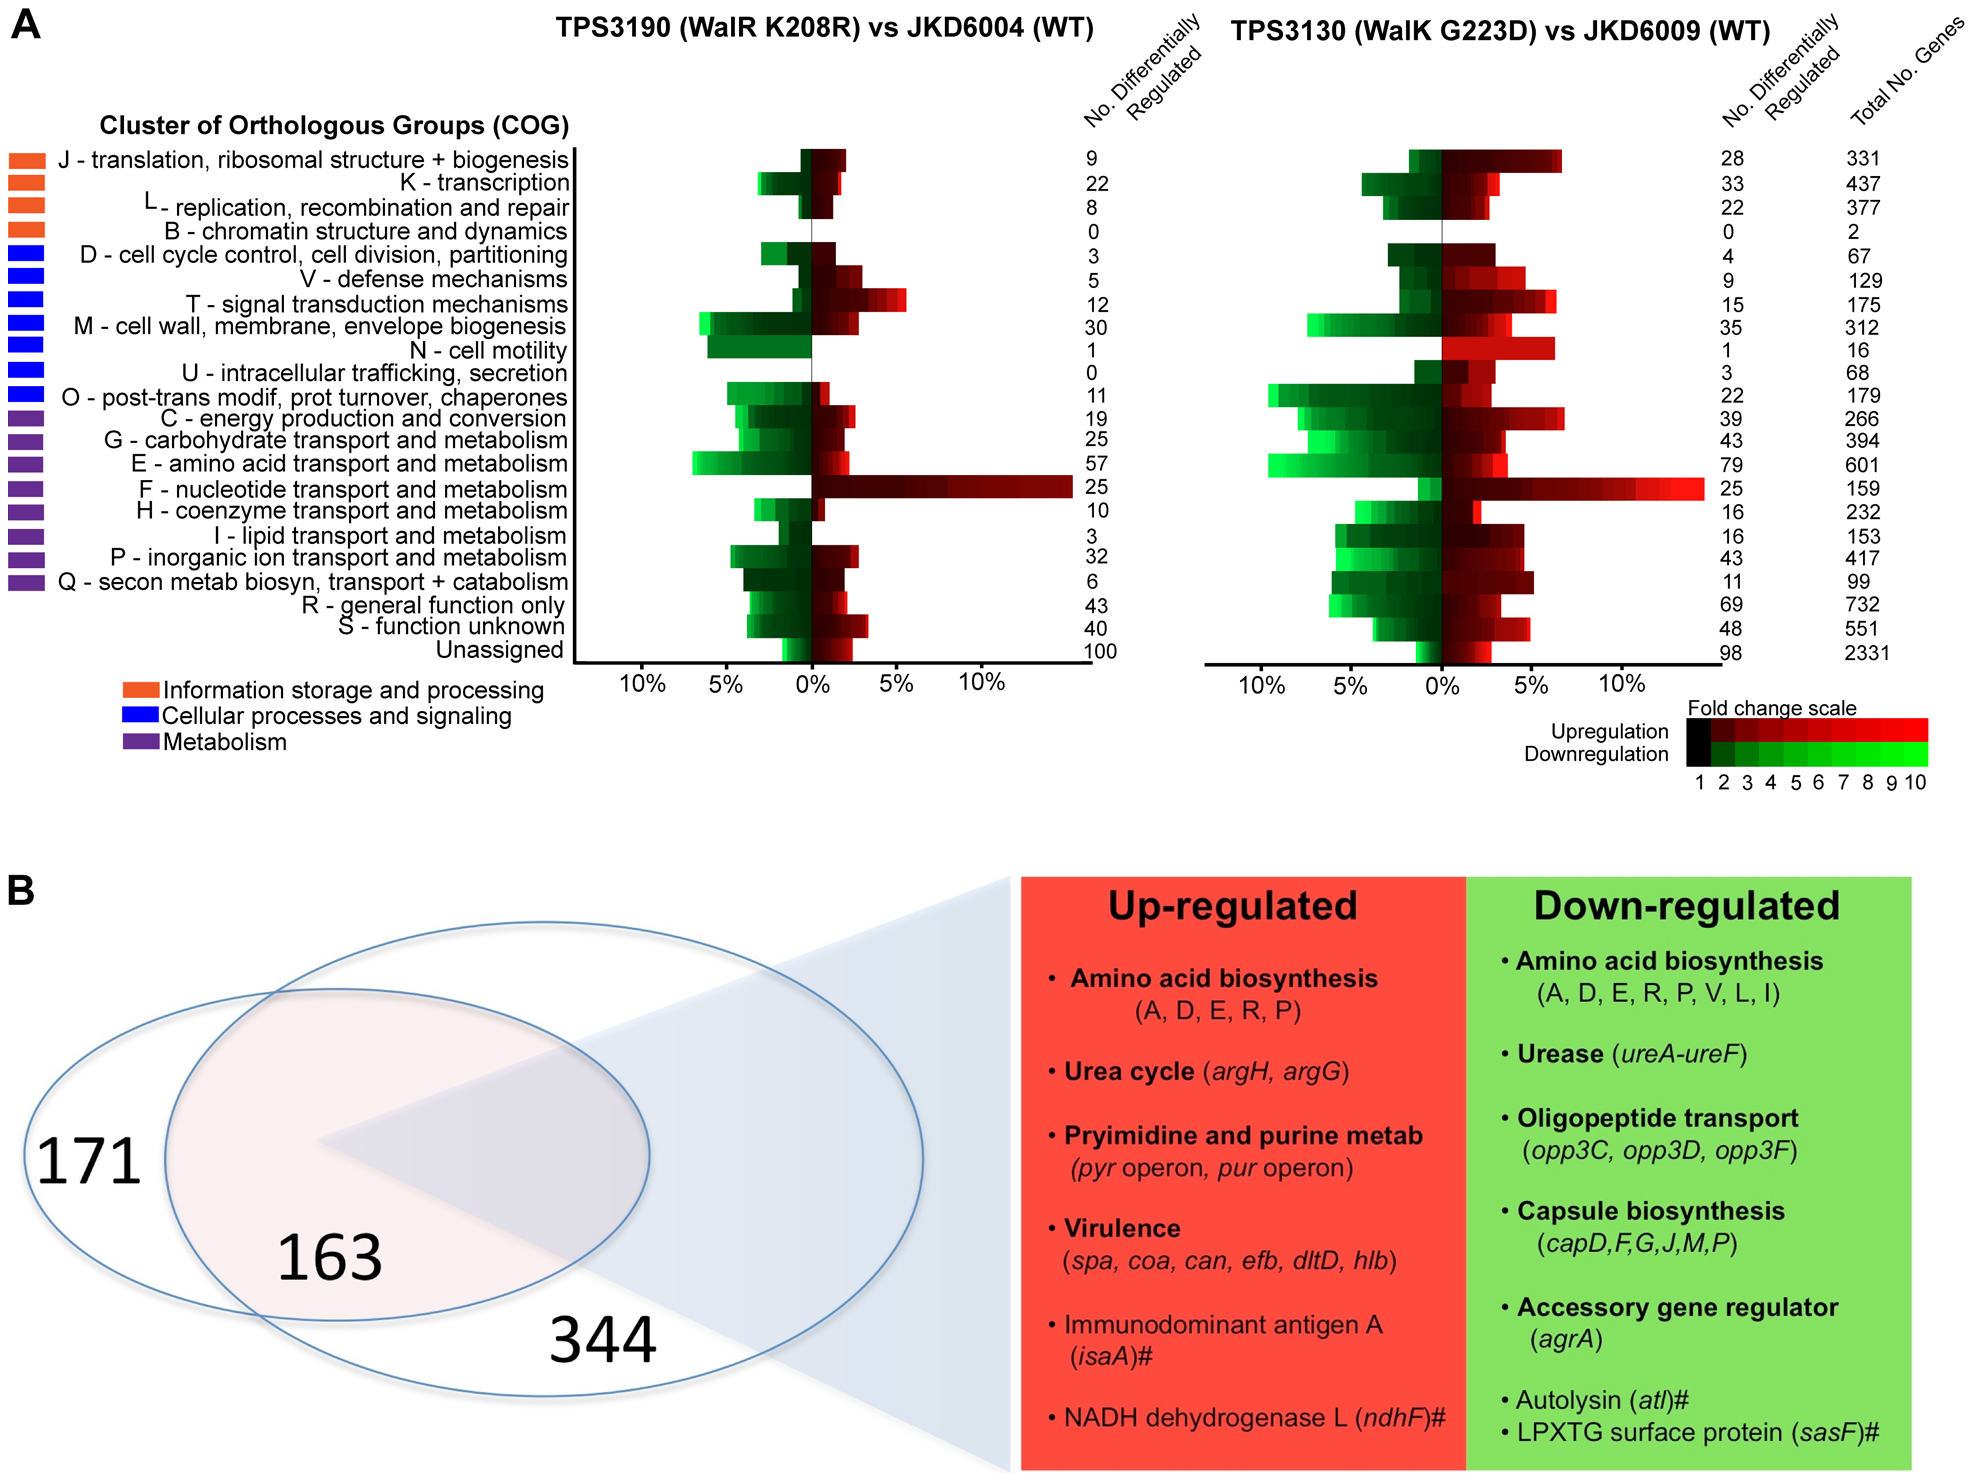 Microarray transcriptional analysis of defined WalK (G223D) and WalR (K208R) mutants compared to parental strains.